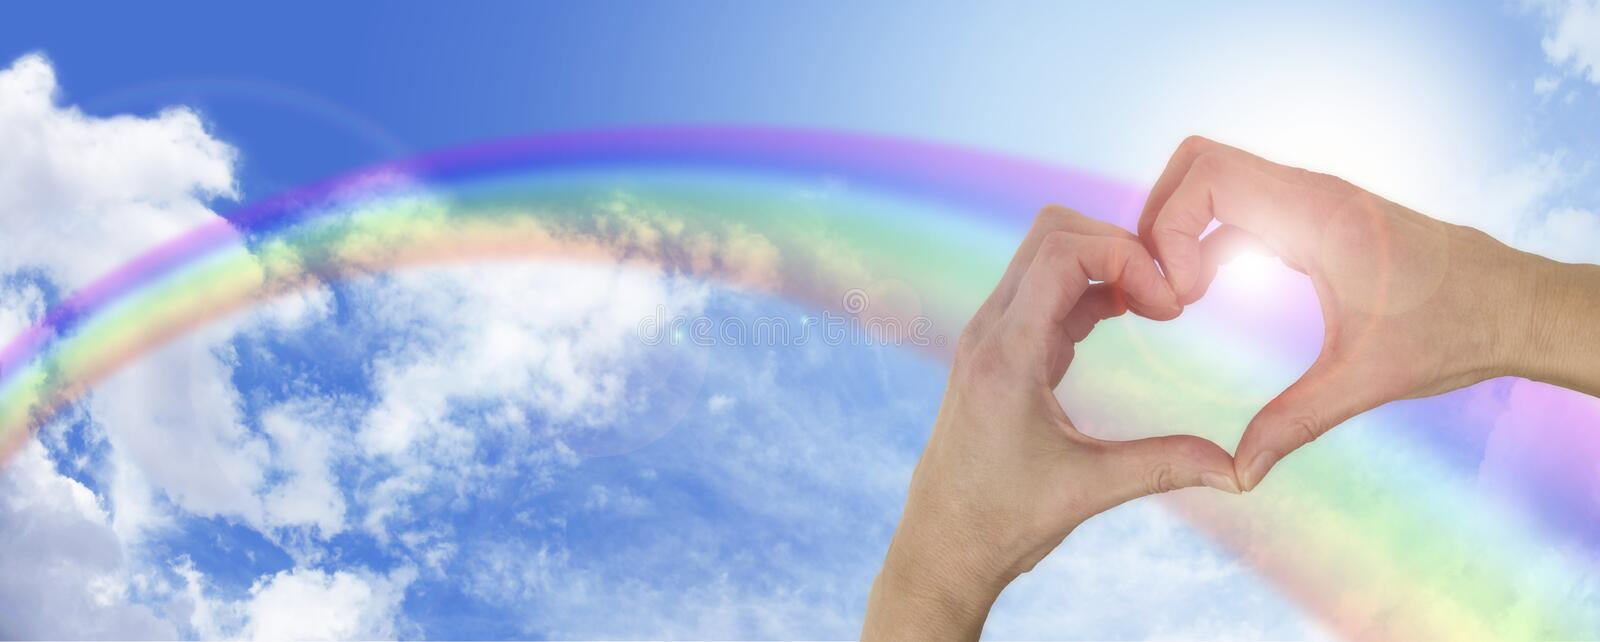 Healing hands on blue sky and rainbow banner. Website banner for a healer showing female hands making heart shape with rainbow arcing out on a blue sky and